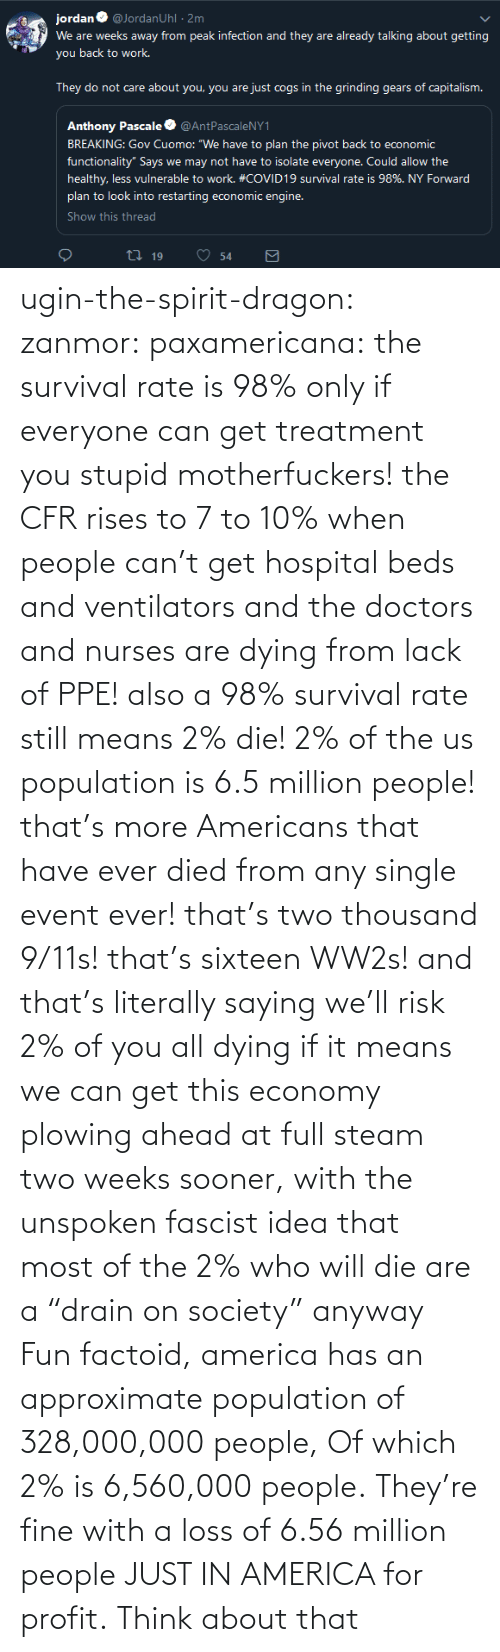 "doctors: ugin-the-spirit-dragon: zanmor:   paxamericana:  the survival rate is 98% only if everyone can get treatment you stupid motherfuckers! the CFR rises to 7 to 10% when people can't get hospital beds and ventilators and the doctors and nurses are dying from lack of PPE!  also a 98% survival rate still means 2% die! 2% of the us population is 6.5 million people! that's more Americans that have ever died from any single event ever! that's two thousand 9/11s! that's sixteen WW2s!  and that's literally saying we'll risk 2% of you all dying if it means we can get this economy plowing ahead at full steam two weeks sooner, with the unspoken fascist idea that most of the 2% who will die are a ""drain on society"" anyway    Fun factoid, america has an approximate population of 328,000,000 people,  Of which 2% is 6,560,000 people. They're fine with a loss of 6.56 million people JUST IN AMERICA for profit. Think about that"